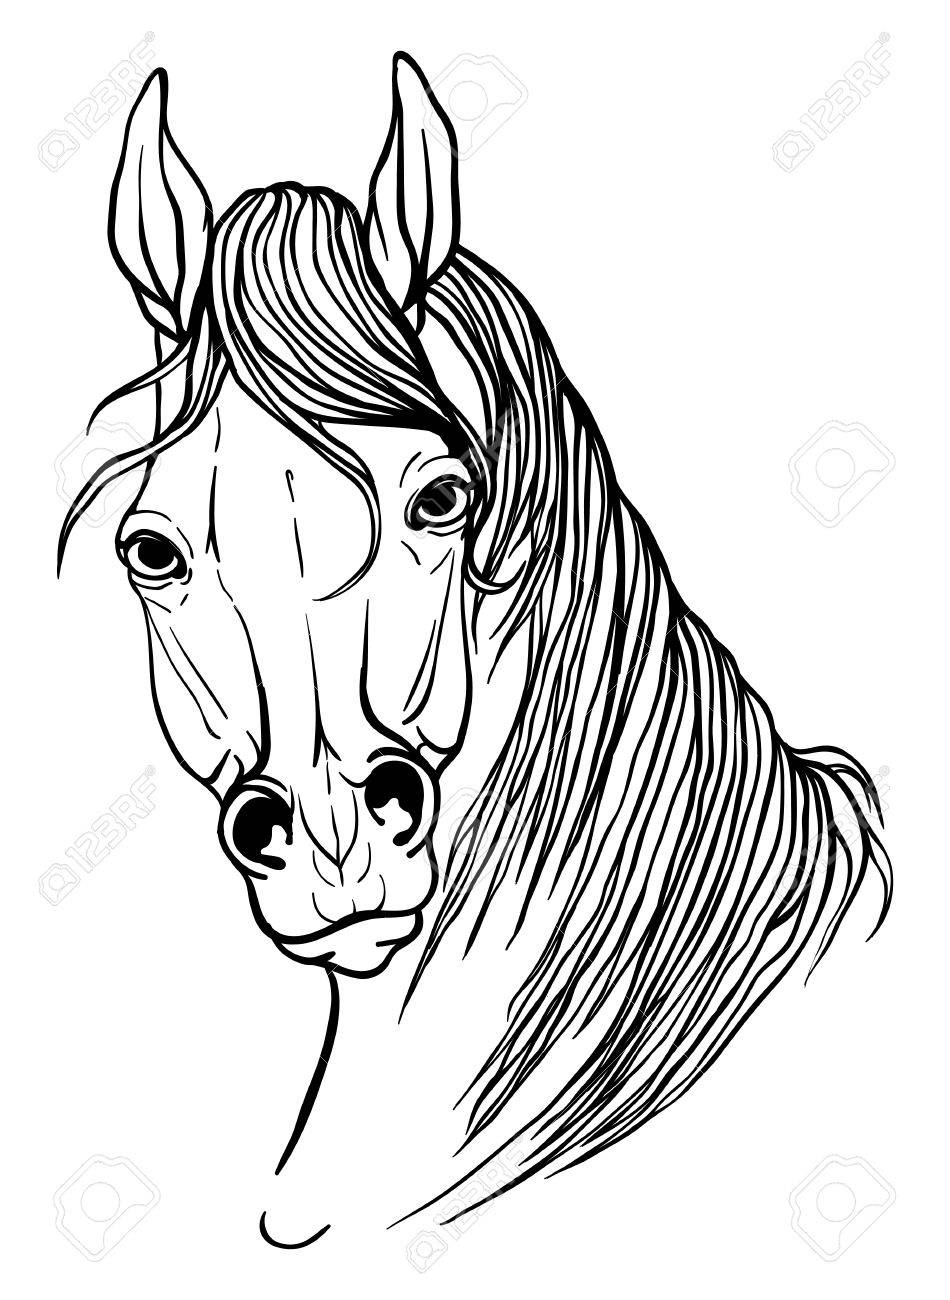 950x1300 Page Coloring Portrait Of A Horse Royalty Free Cliparts, Vectors